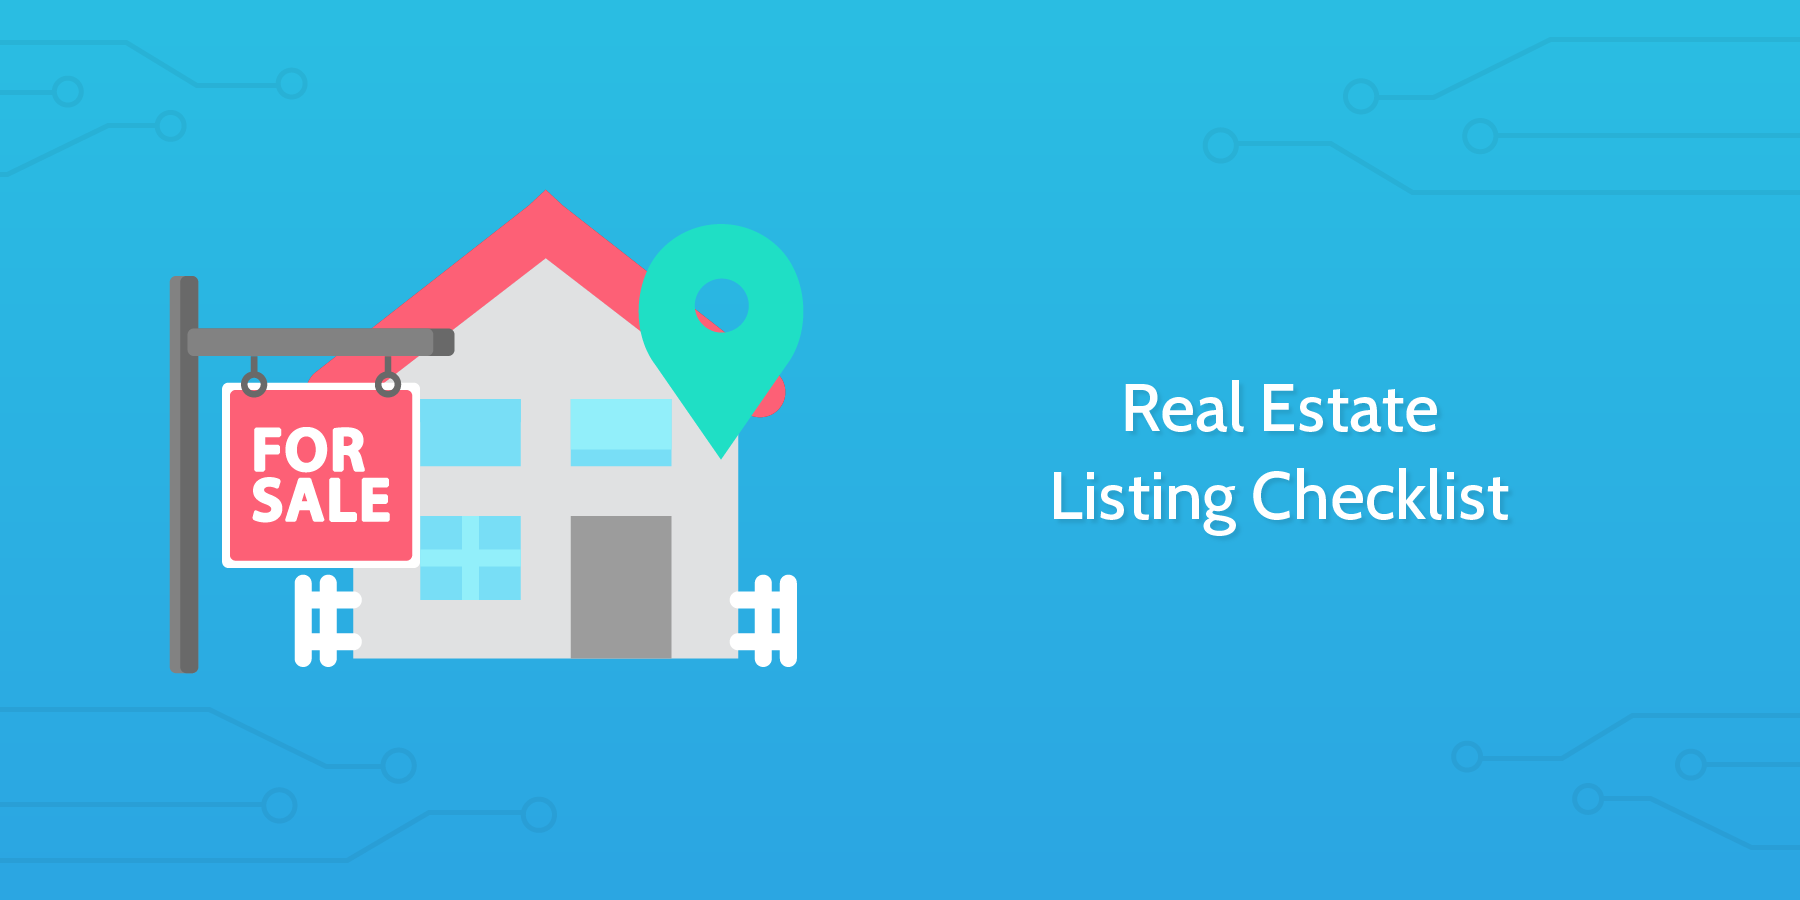 Real estate closing checklist template gallery for Real estate closing checklist template